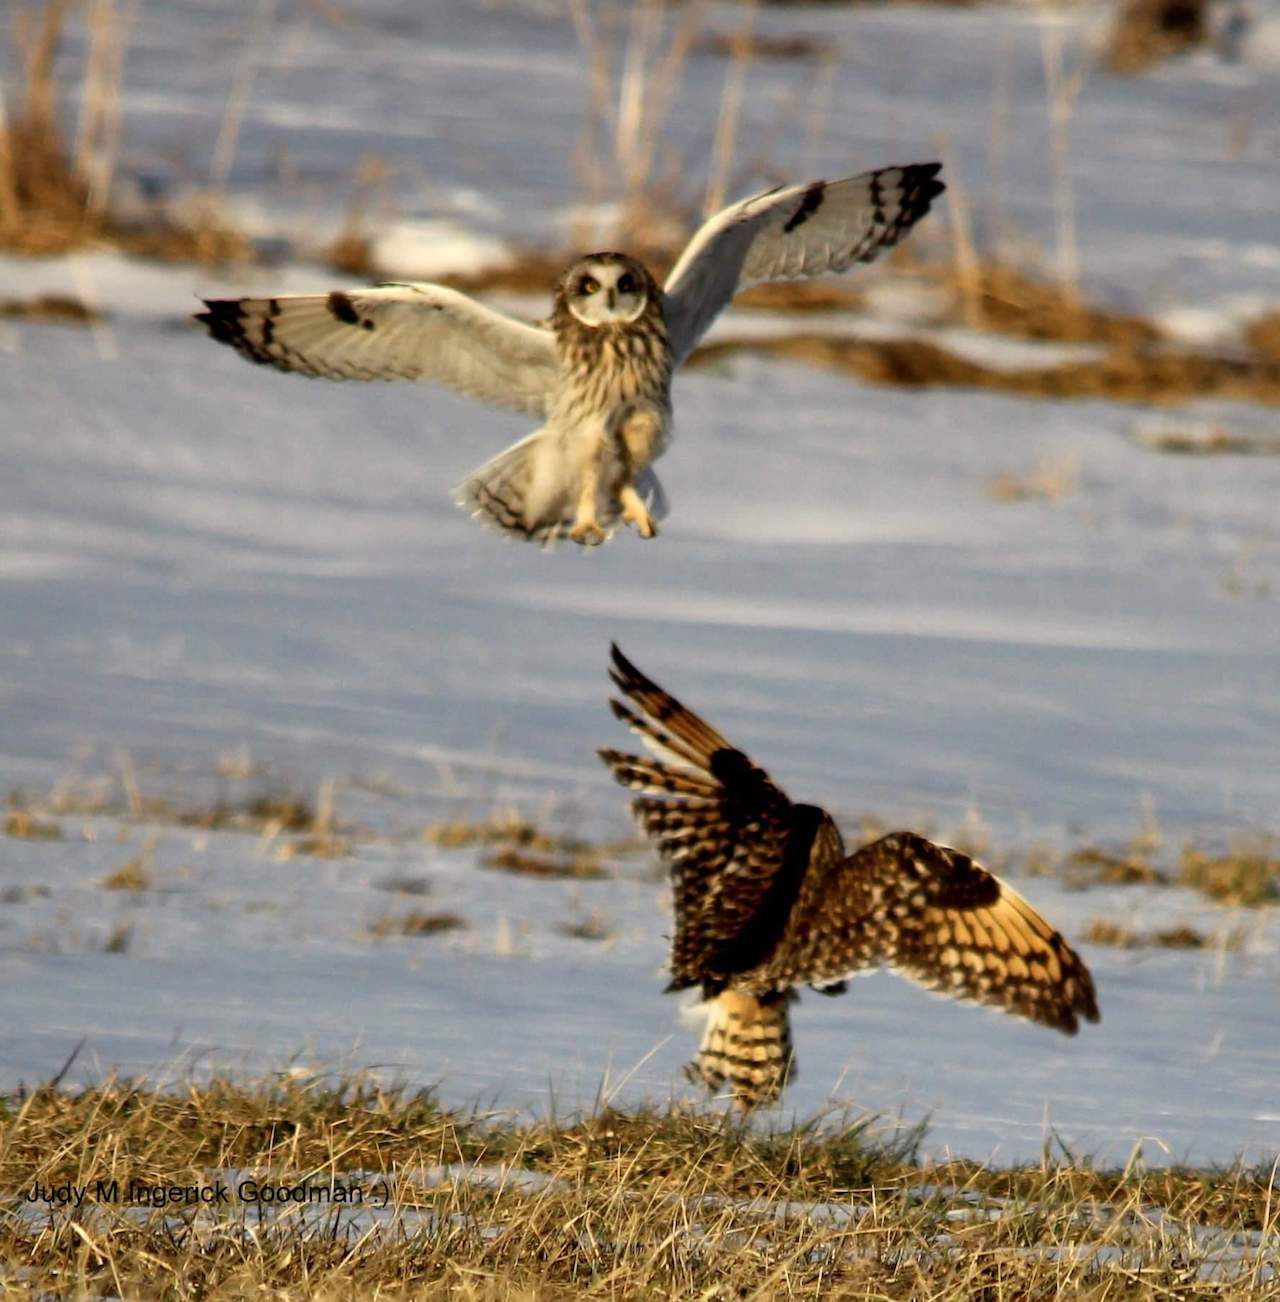 Sharing is hard for owls (photo)